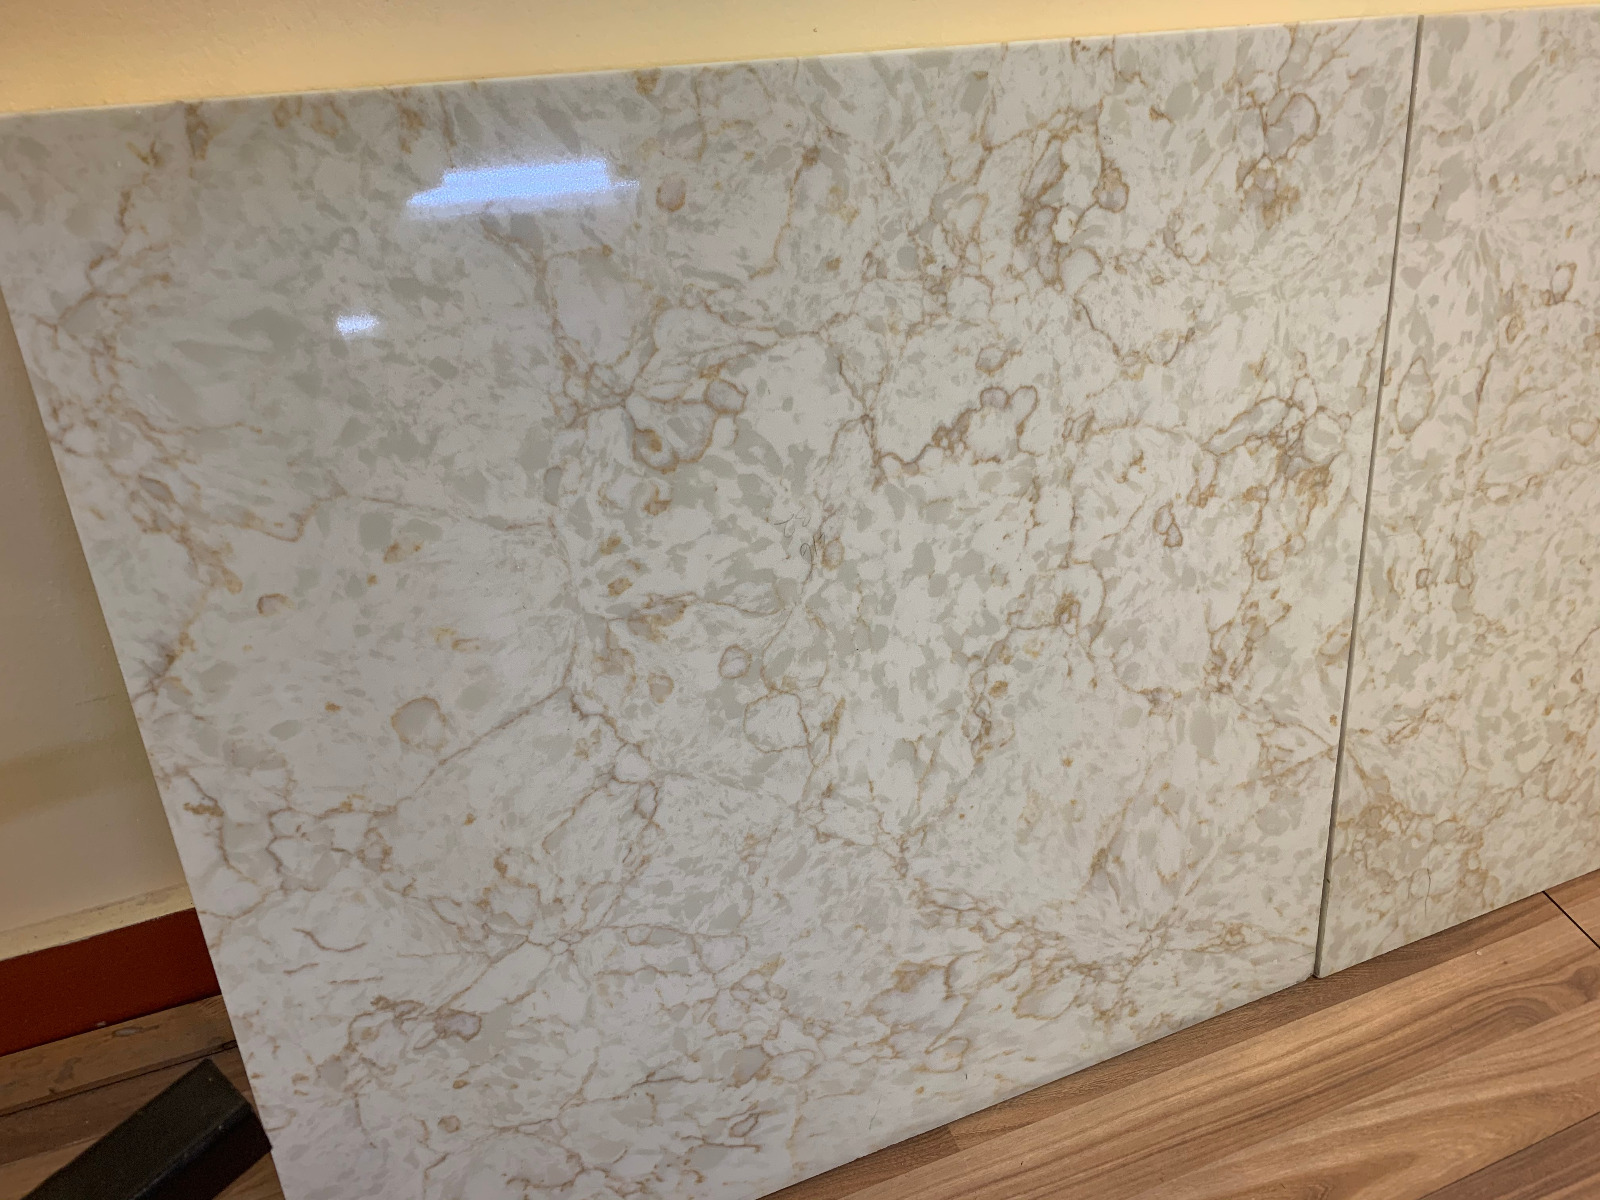 Flower Veins Quartz Countertop